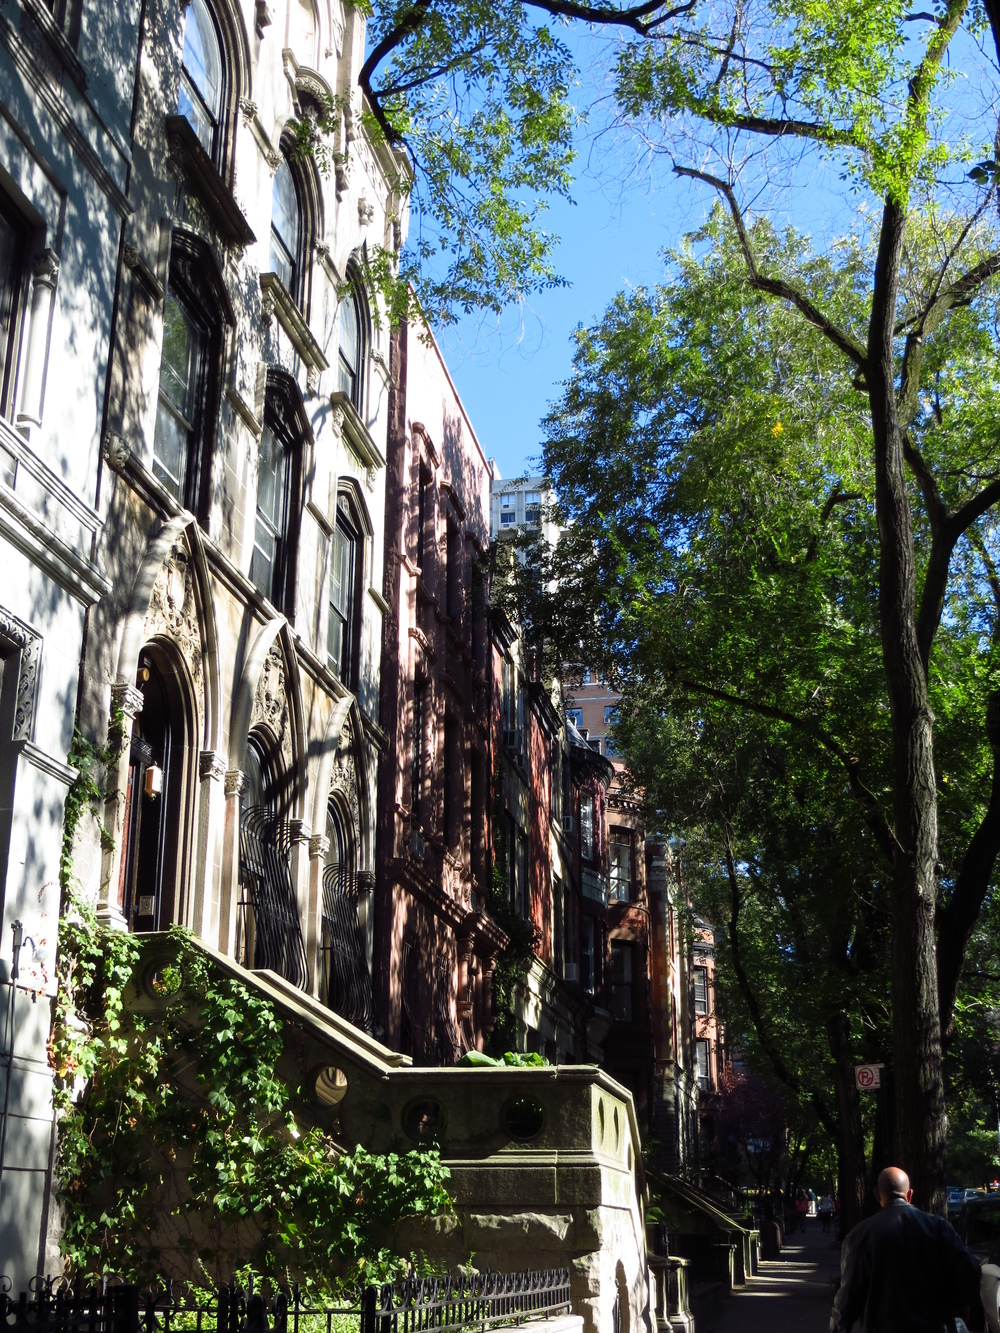 Typical UWS street of brownstones